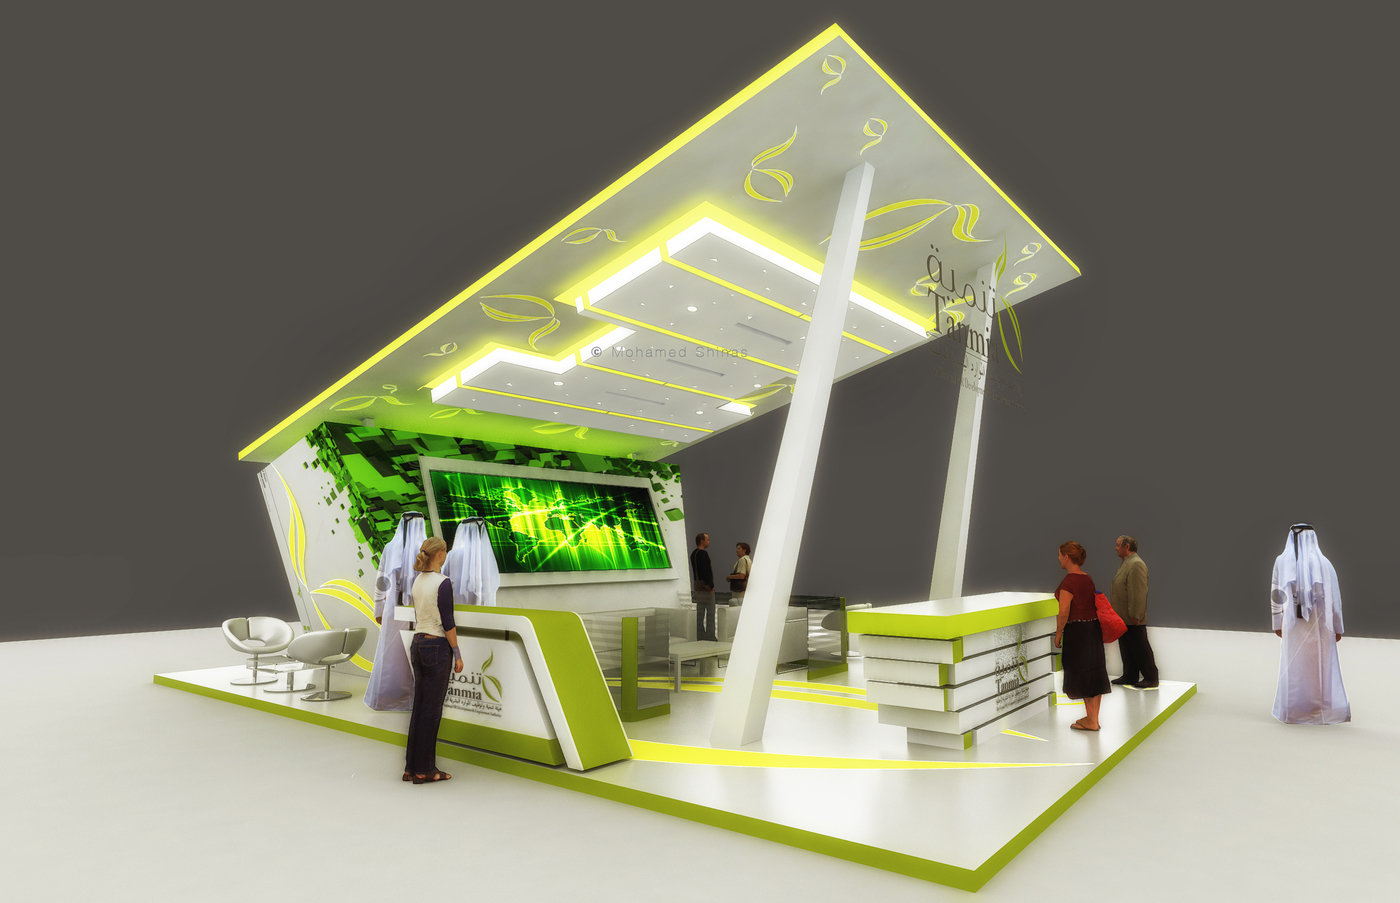 Exhibition Stand Design Kenya : Exhibition stand design by mohamed shinas at coroflot